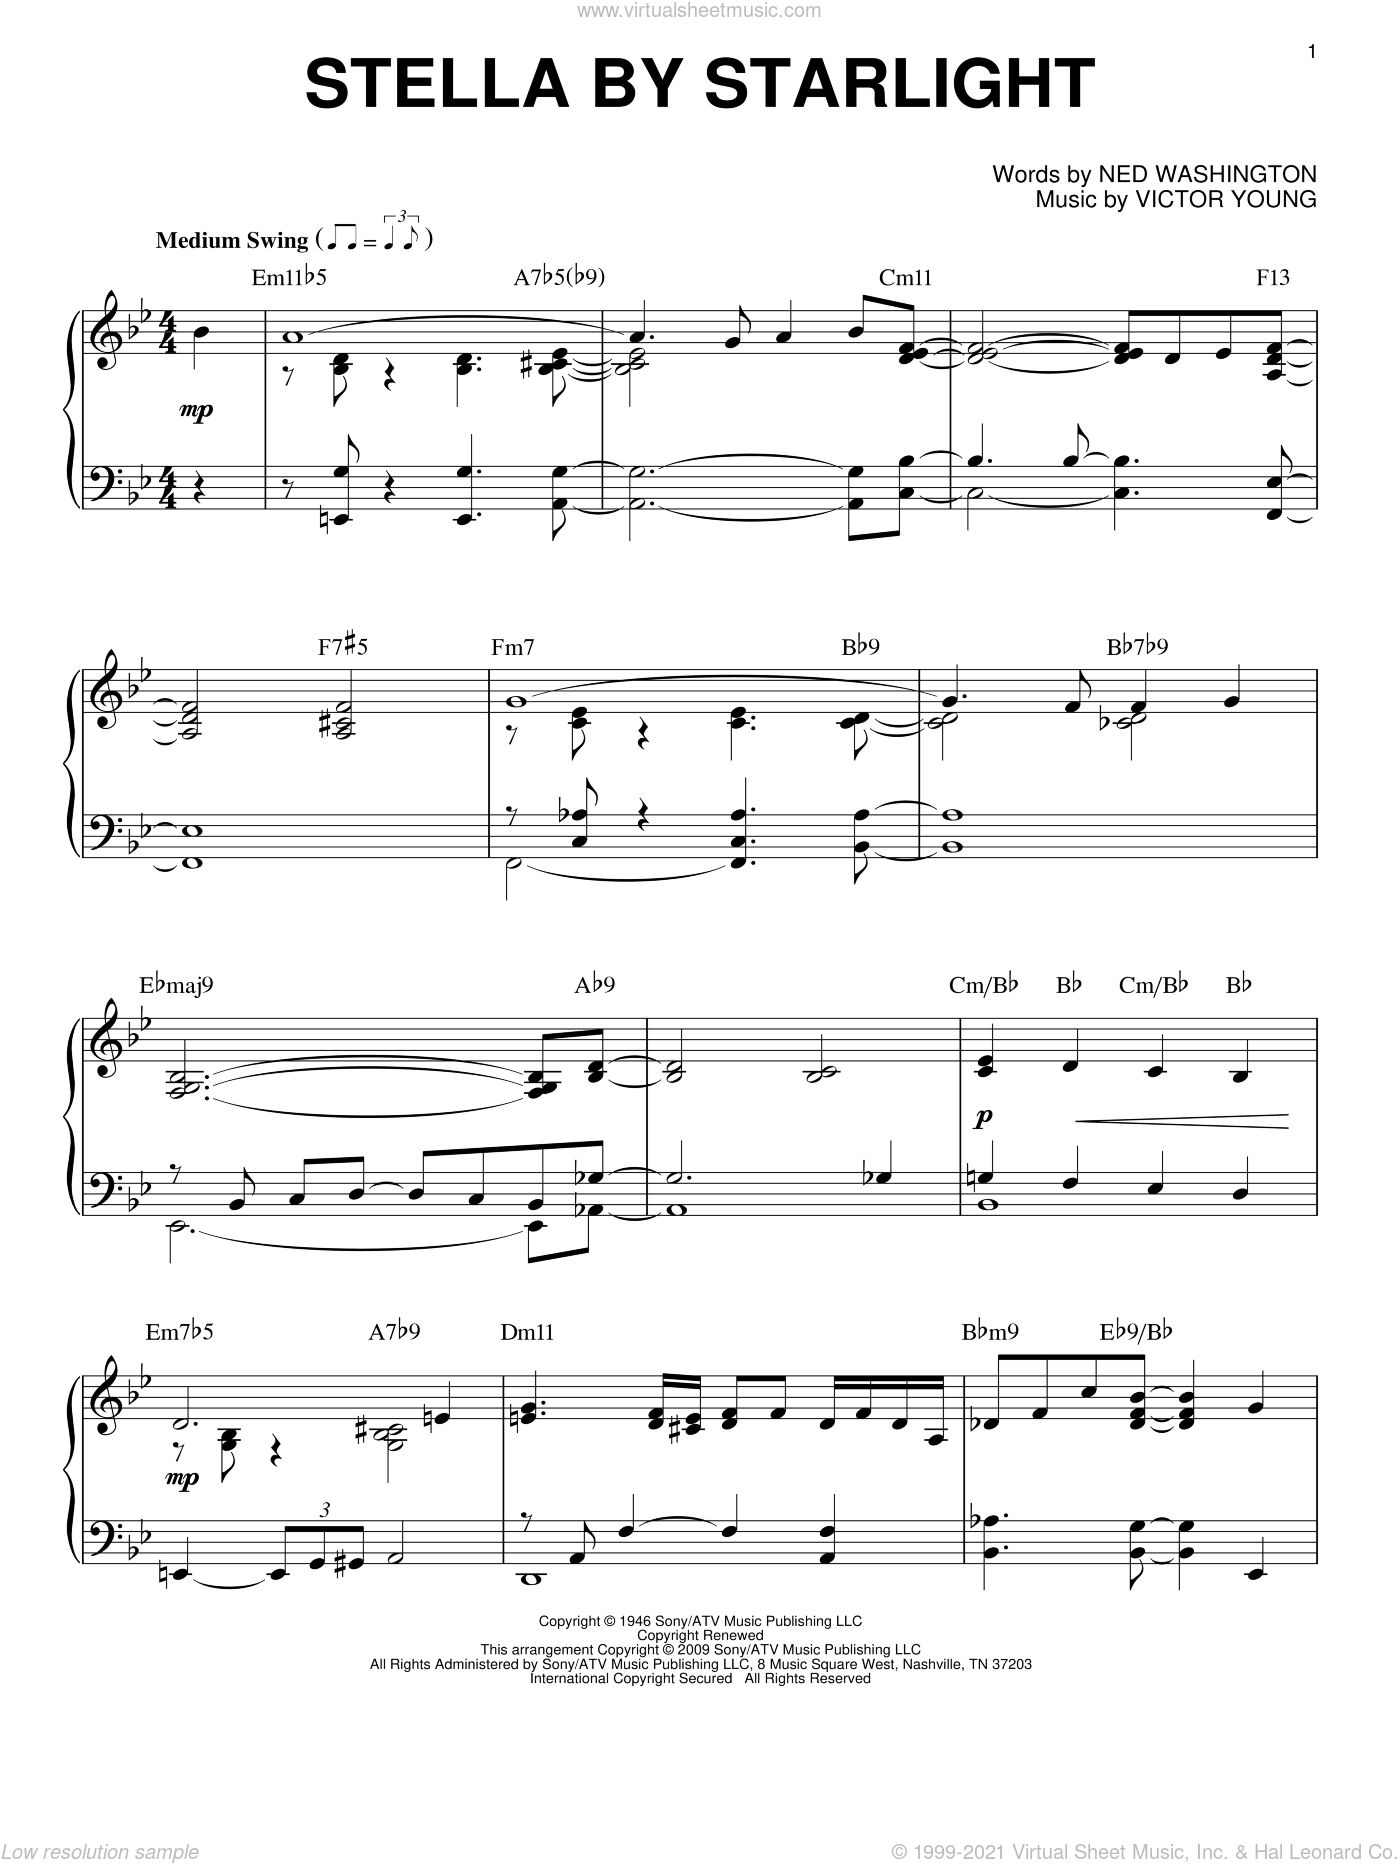 Stella By Starlight sheet music for piano solo by Victor Young and Ned Washington, intermediate piano. Score Image Preview.